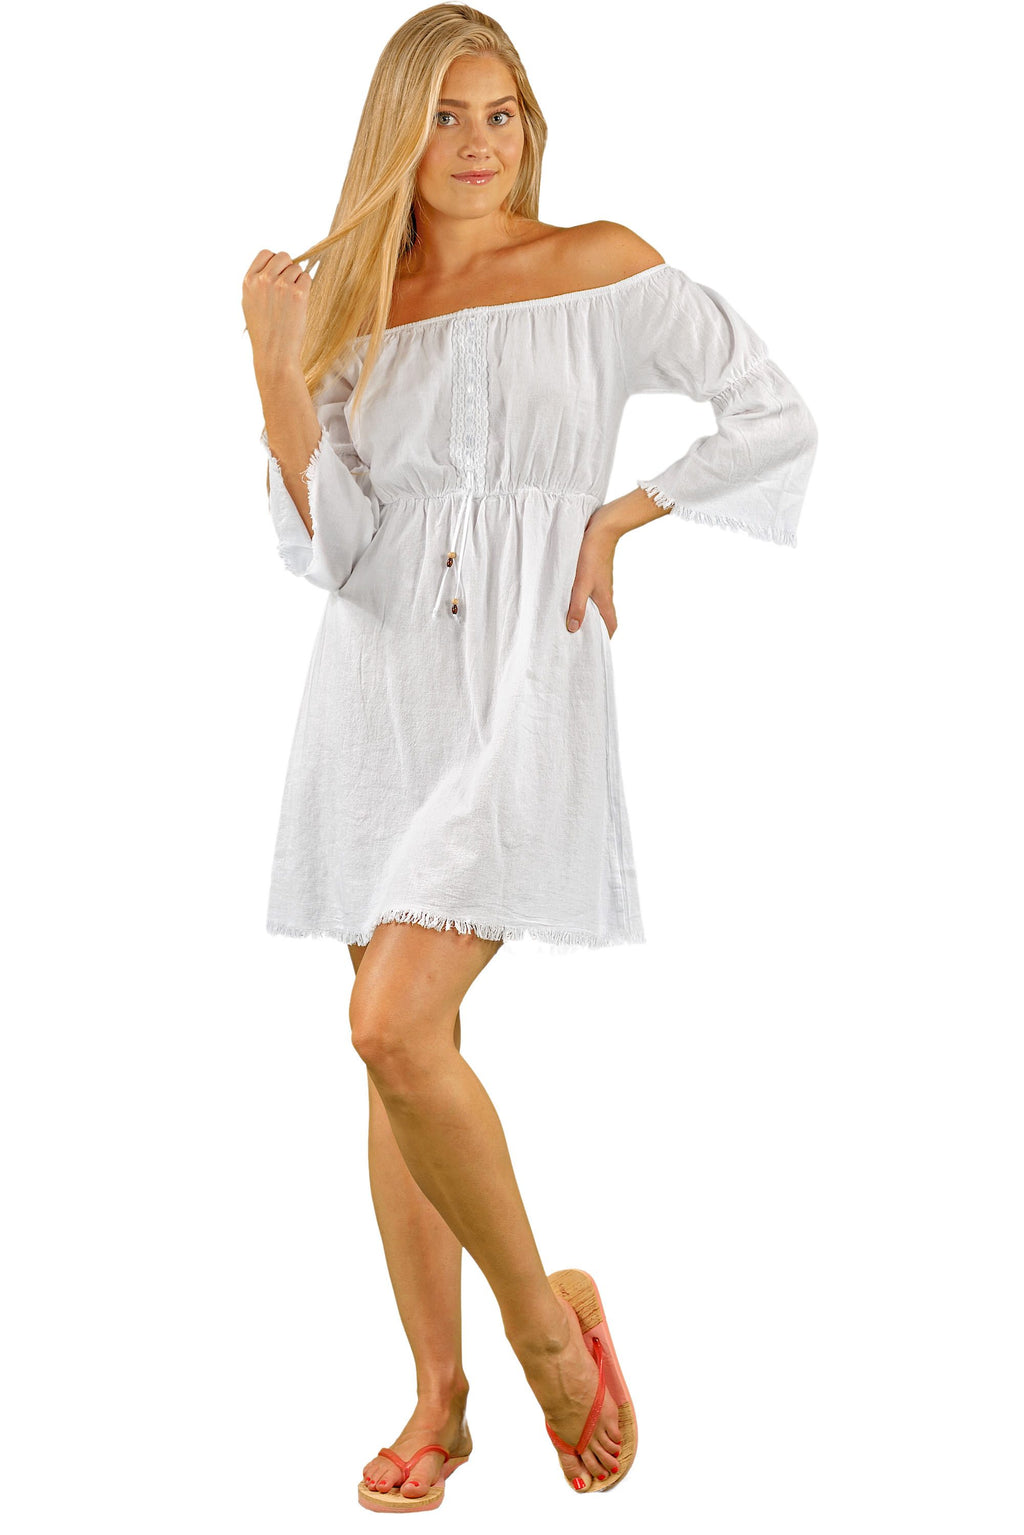 NW1069 - White Cotton Dress - seaspiceresort.com